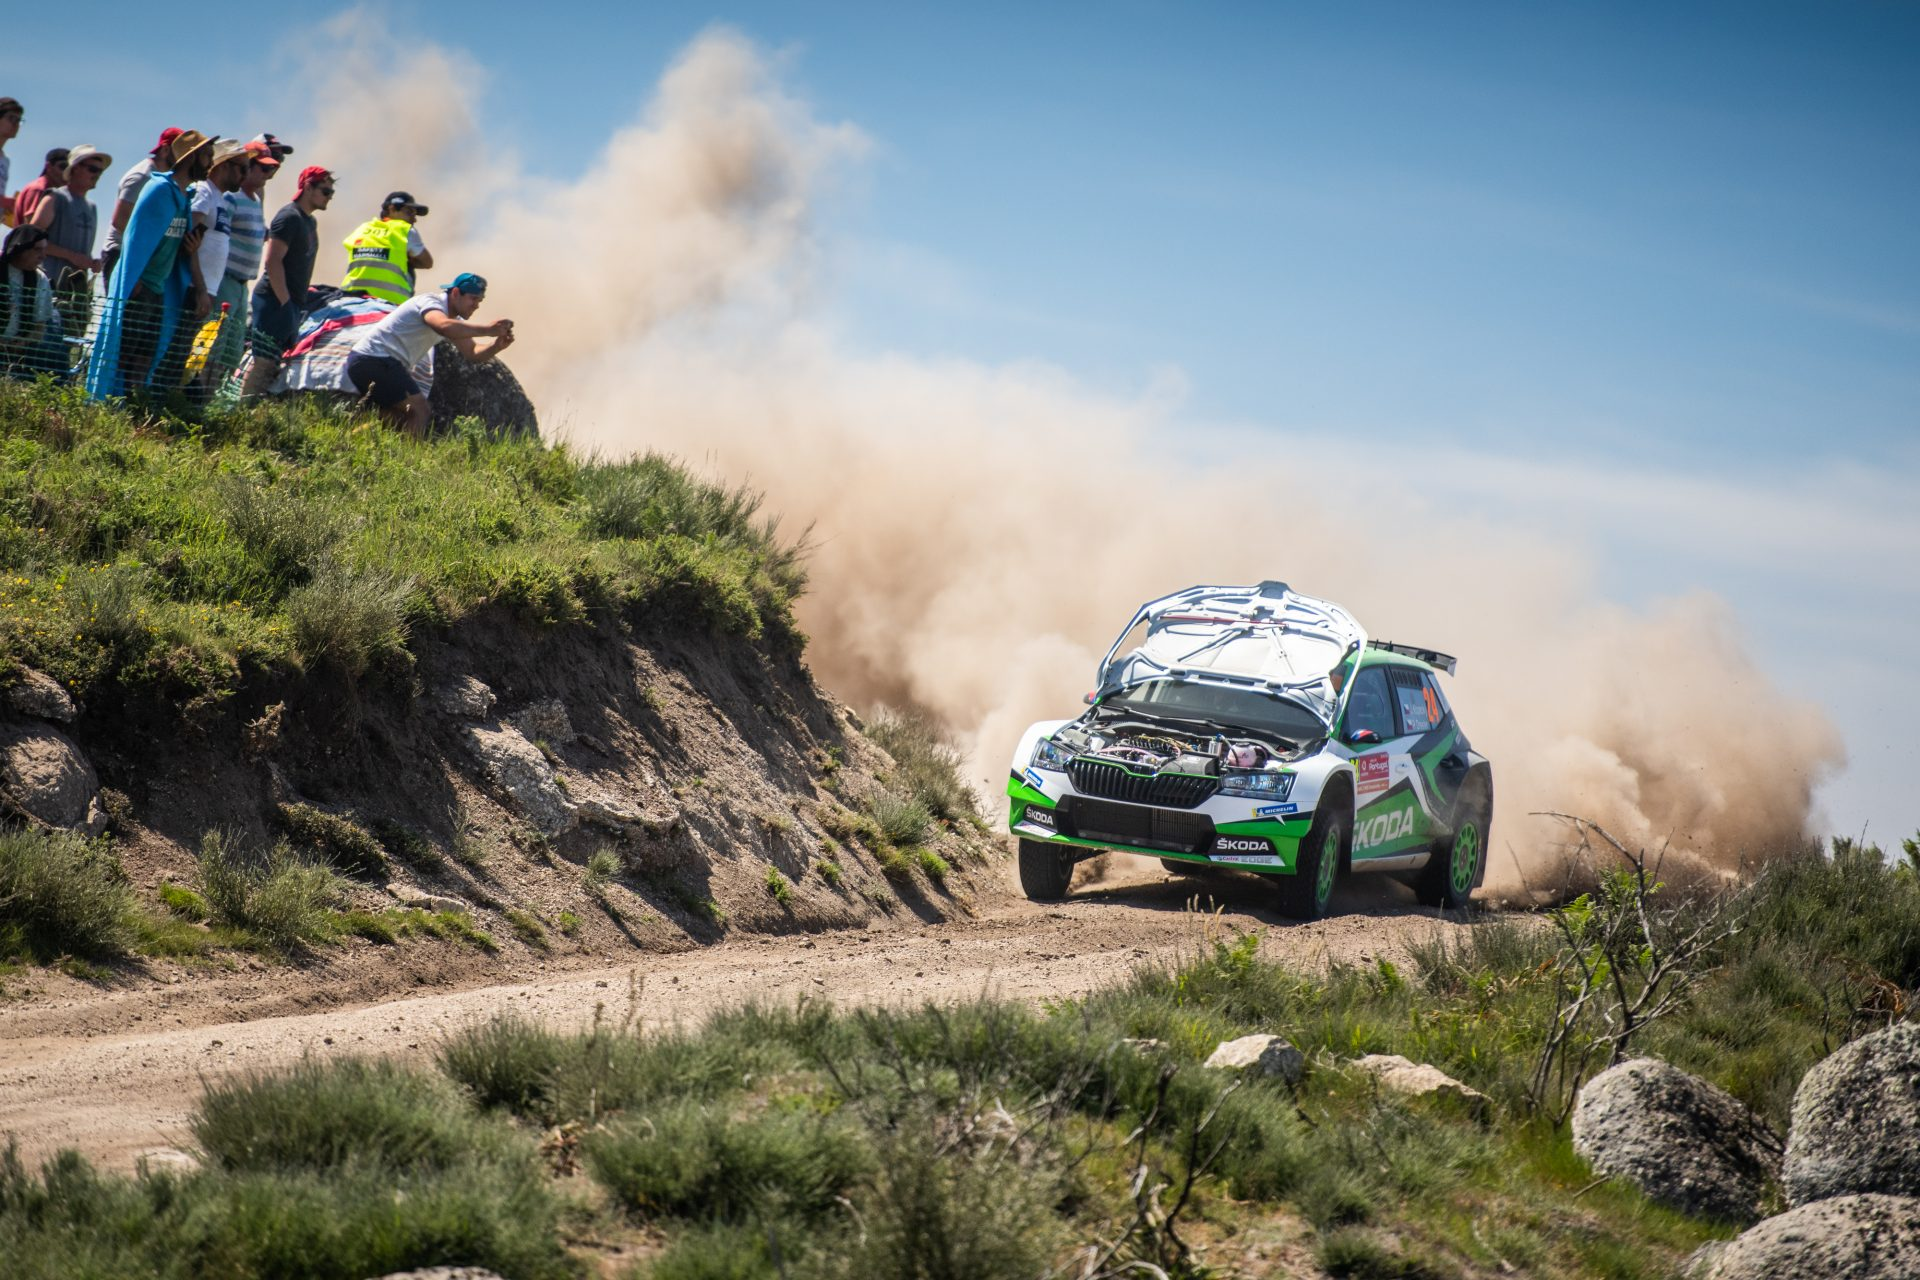 Rally de Portugal 2019: Latest News and Results